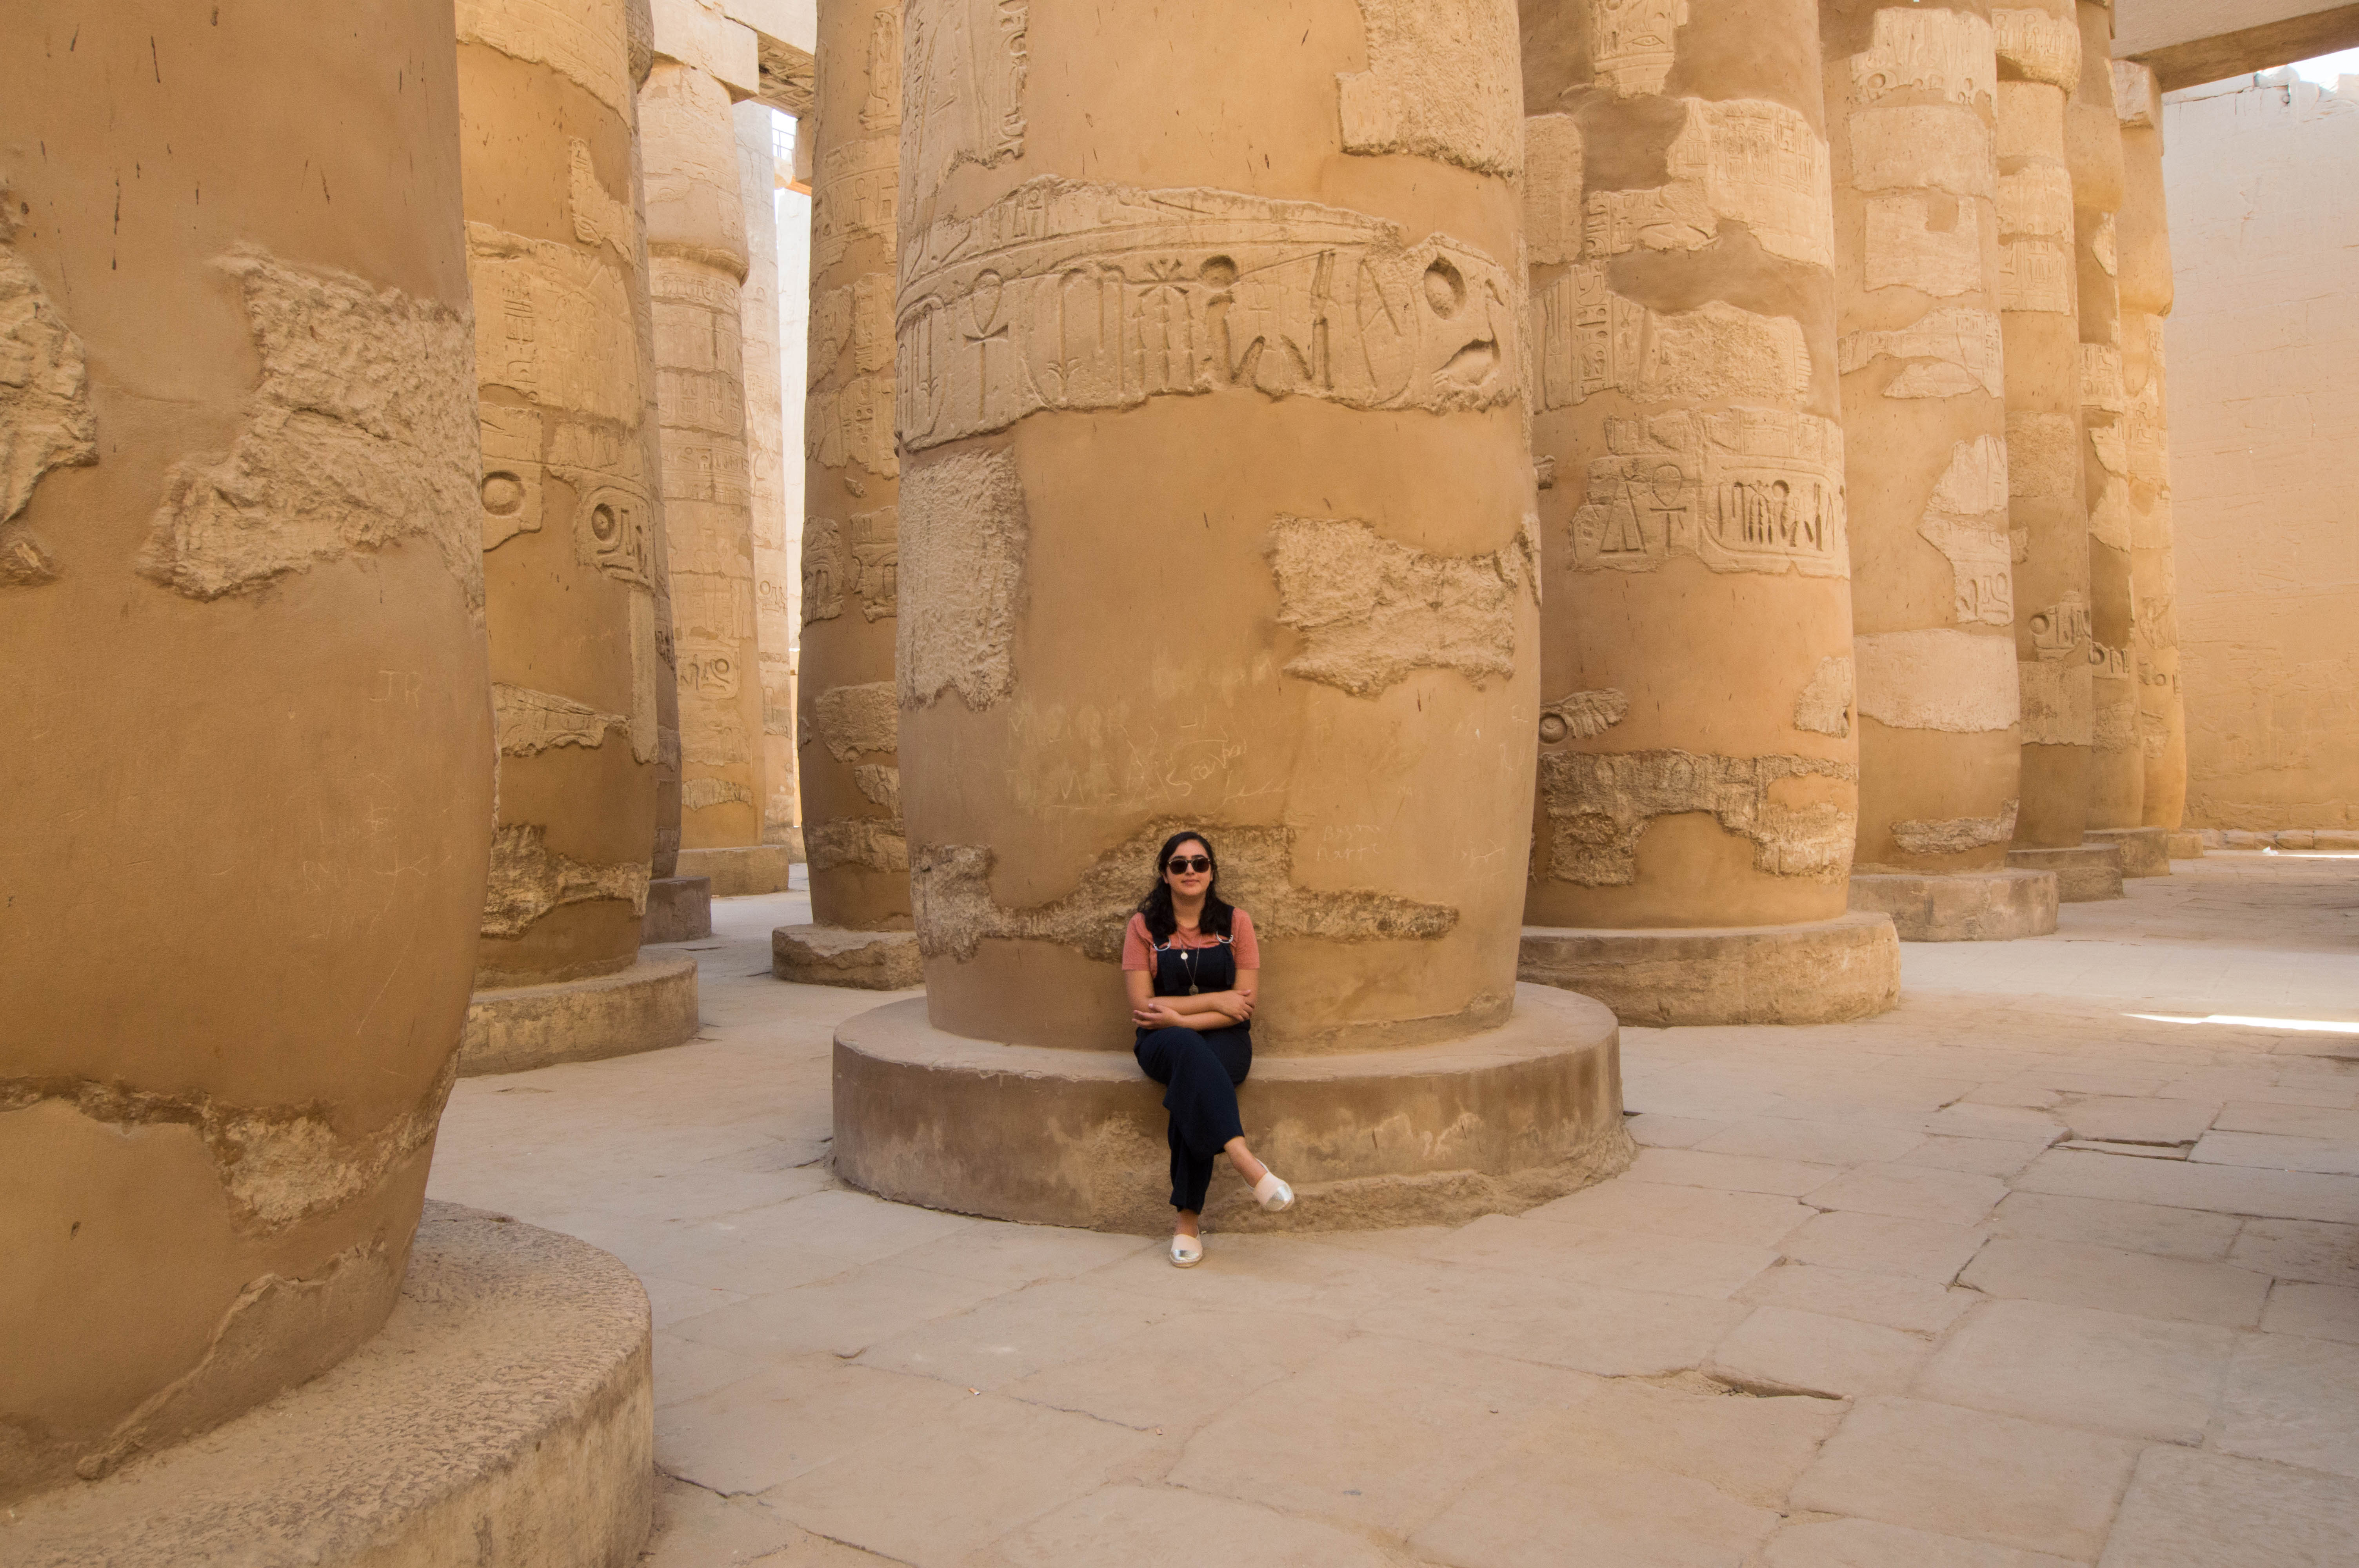 Me In The Hypostyle Hall, Karnak Temple, Luxor, Egypt